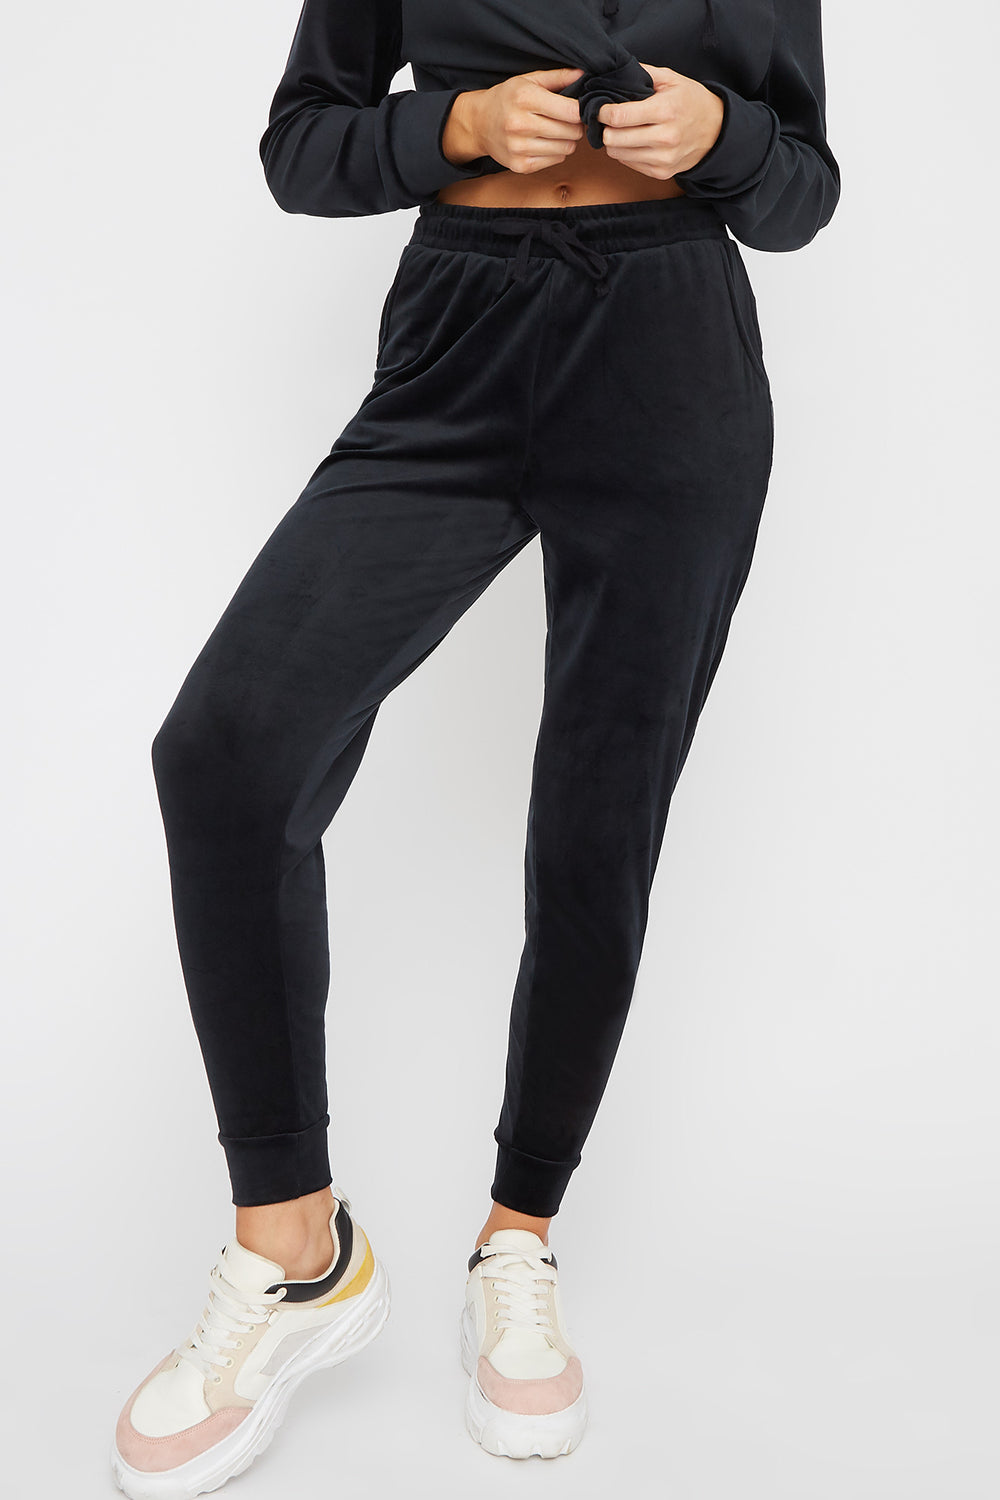 Super Soft Velvet Drawstring Jogger Black